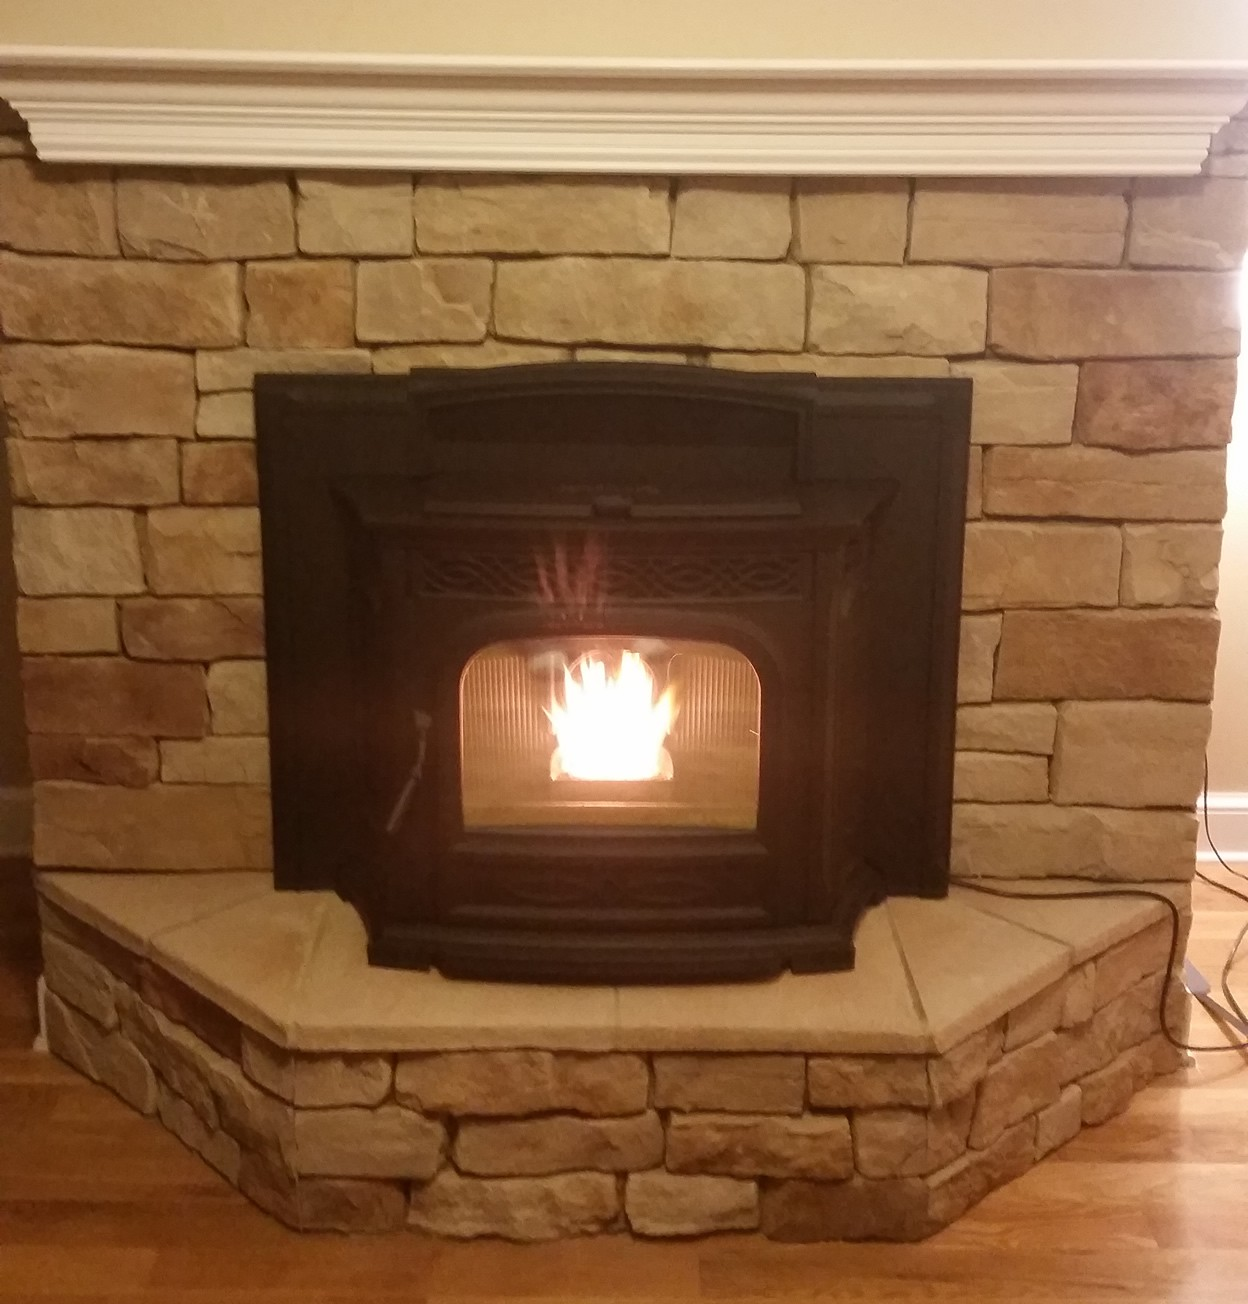 Epic-Building-Company-Dublin-Ohio-Gas-Fireplace